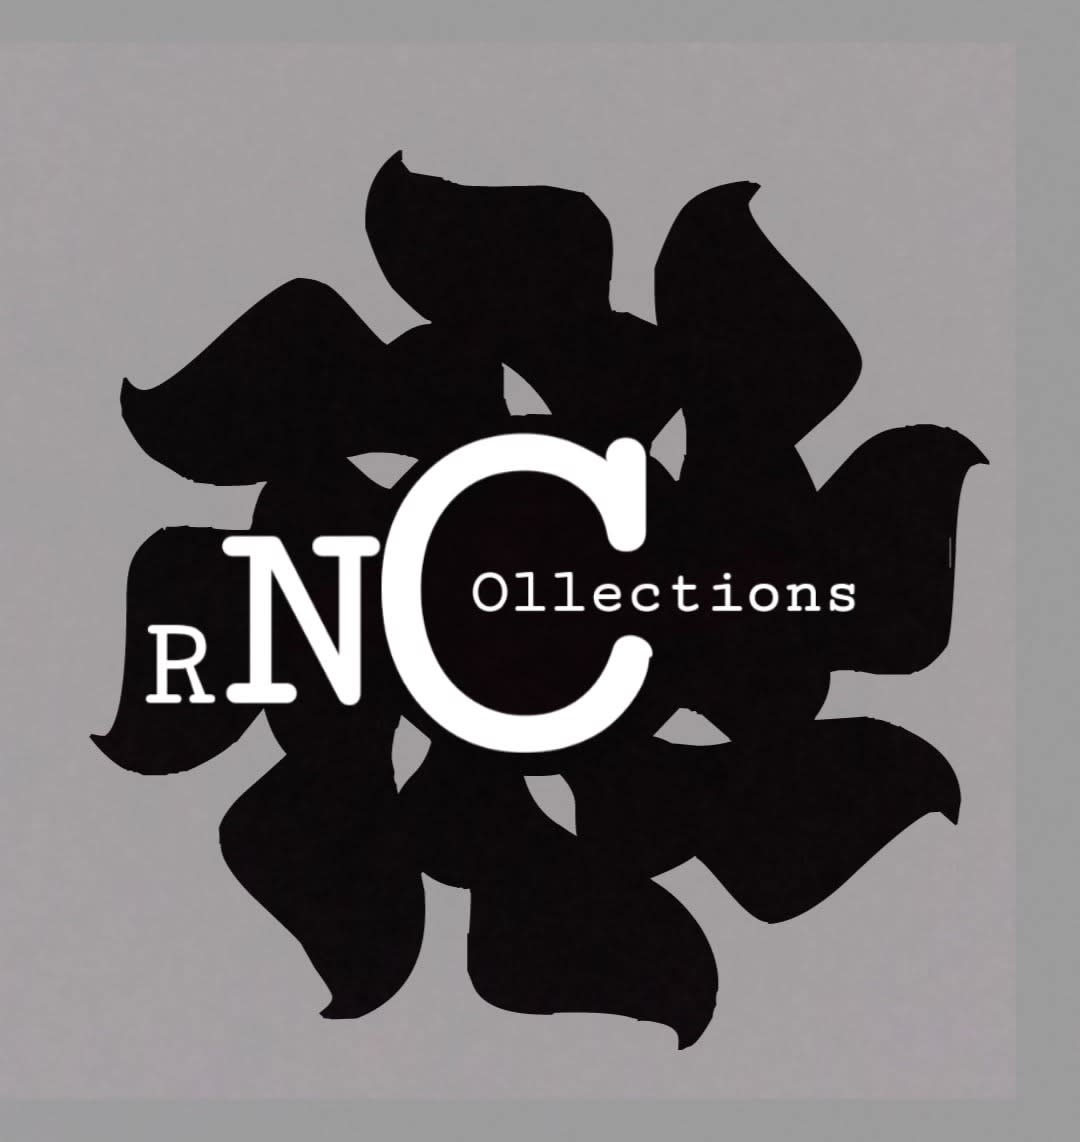 R.N Collections